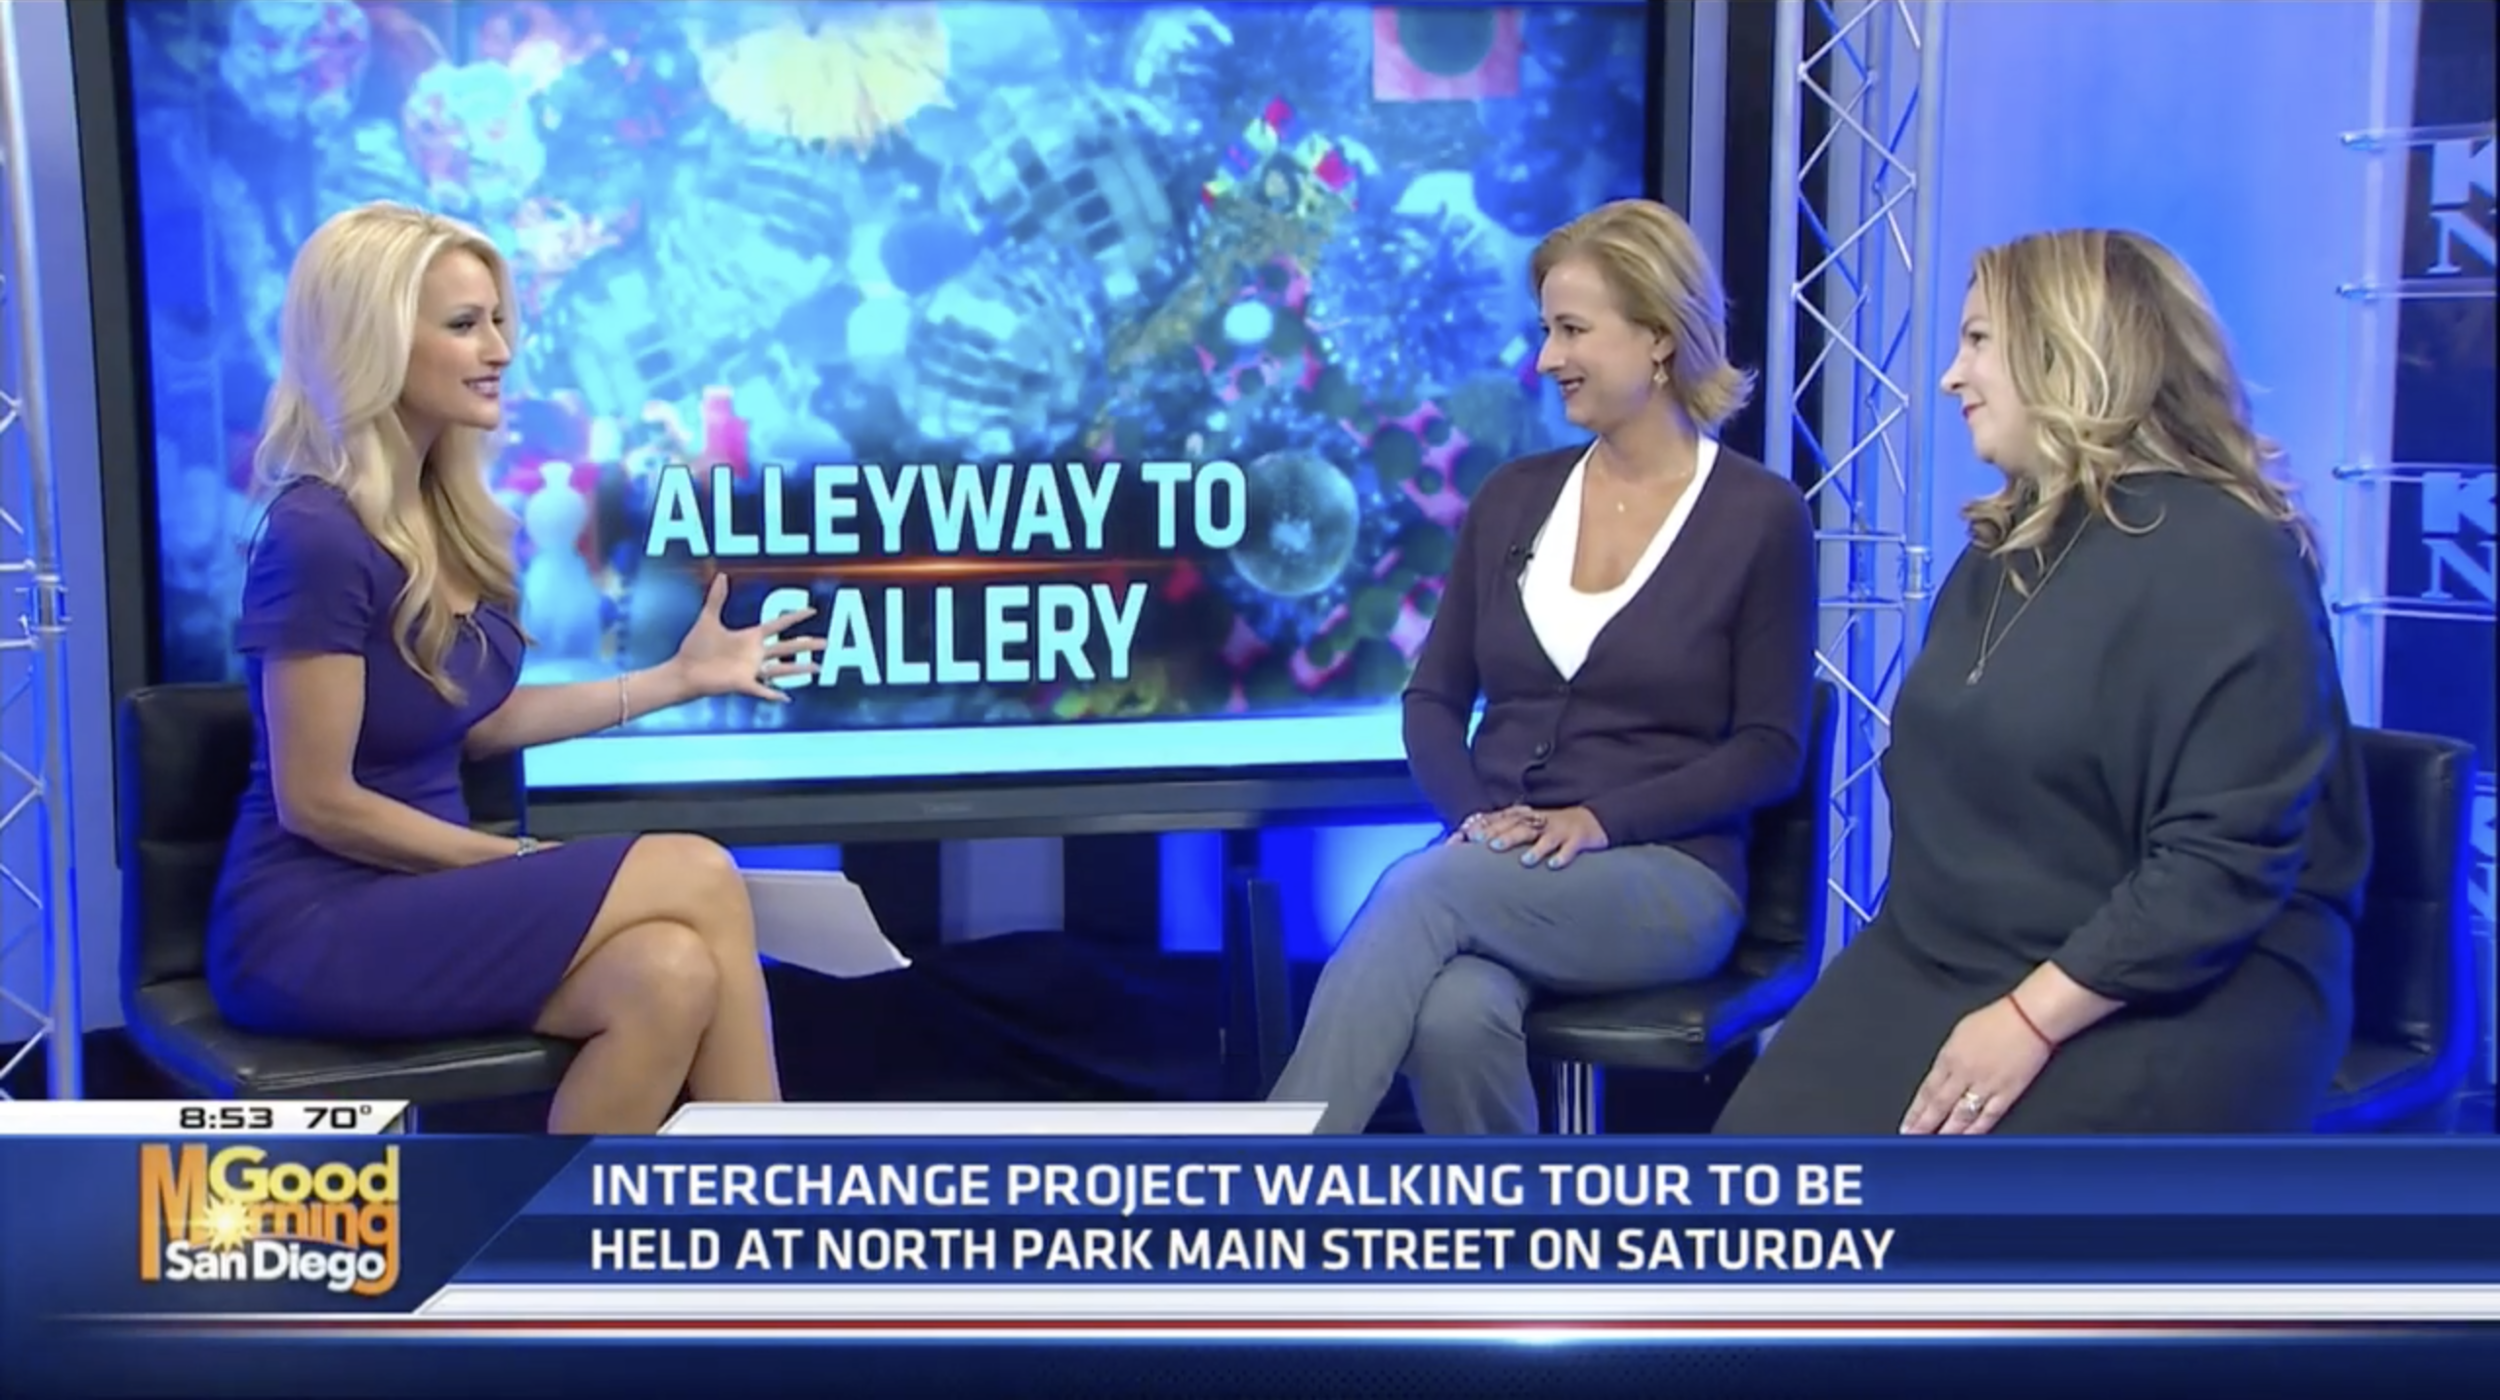 On Thursday, August 1st 2019 North Park PBID Executive Director Angela Landsberg & project co-curator Emily Knapp joined KUSI's Lauren Phinney to discuss the Interchange Project. Click through to see the full clip.